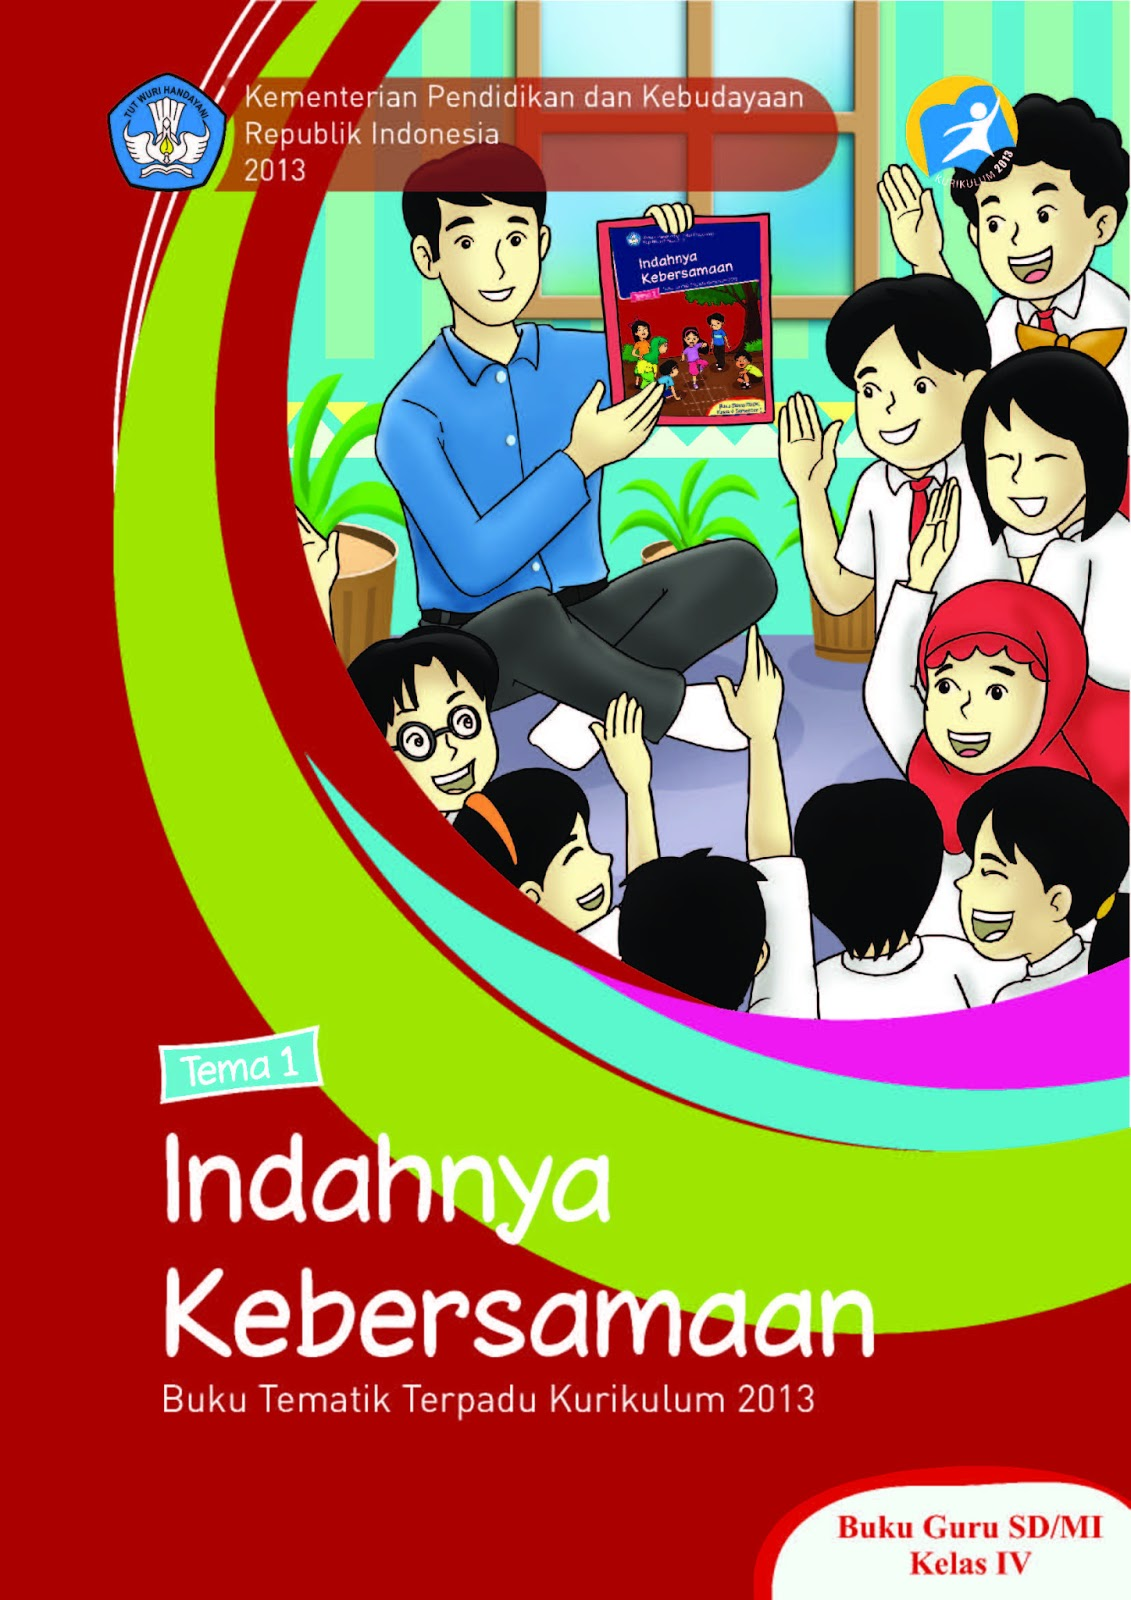 kementerian pendidikan nasional tahun 2013 download download 17 1 mb